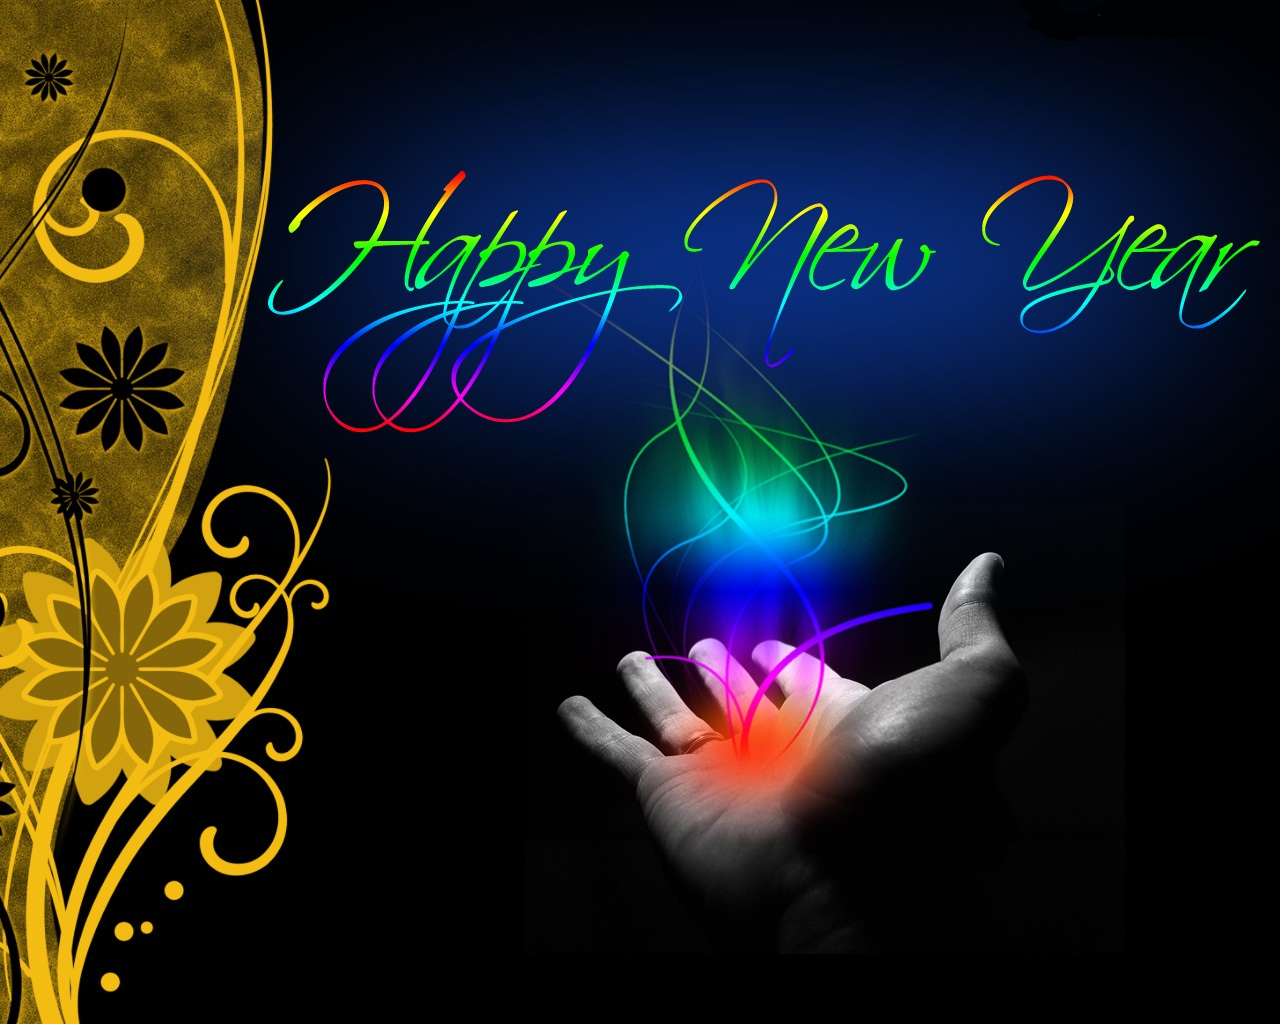 http://sms2everyone.files.wordpress.com/2012/01/happy-new-year-2013.jpg